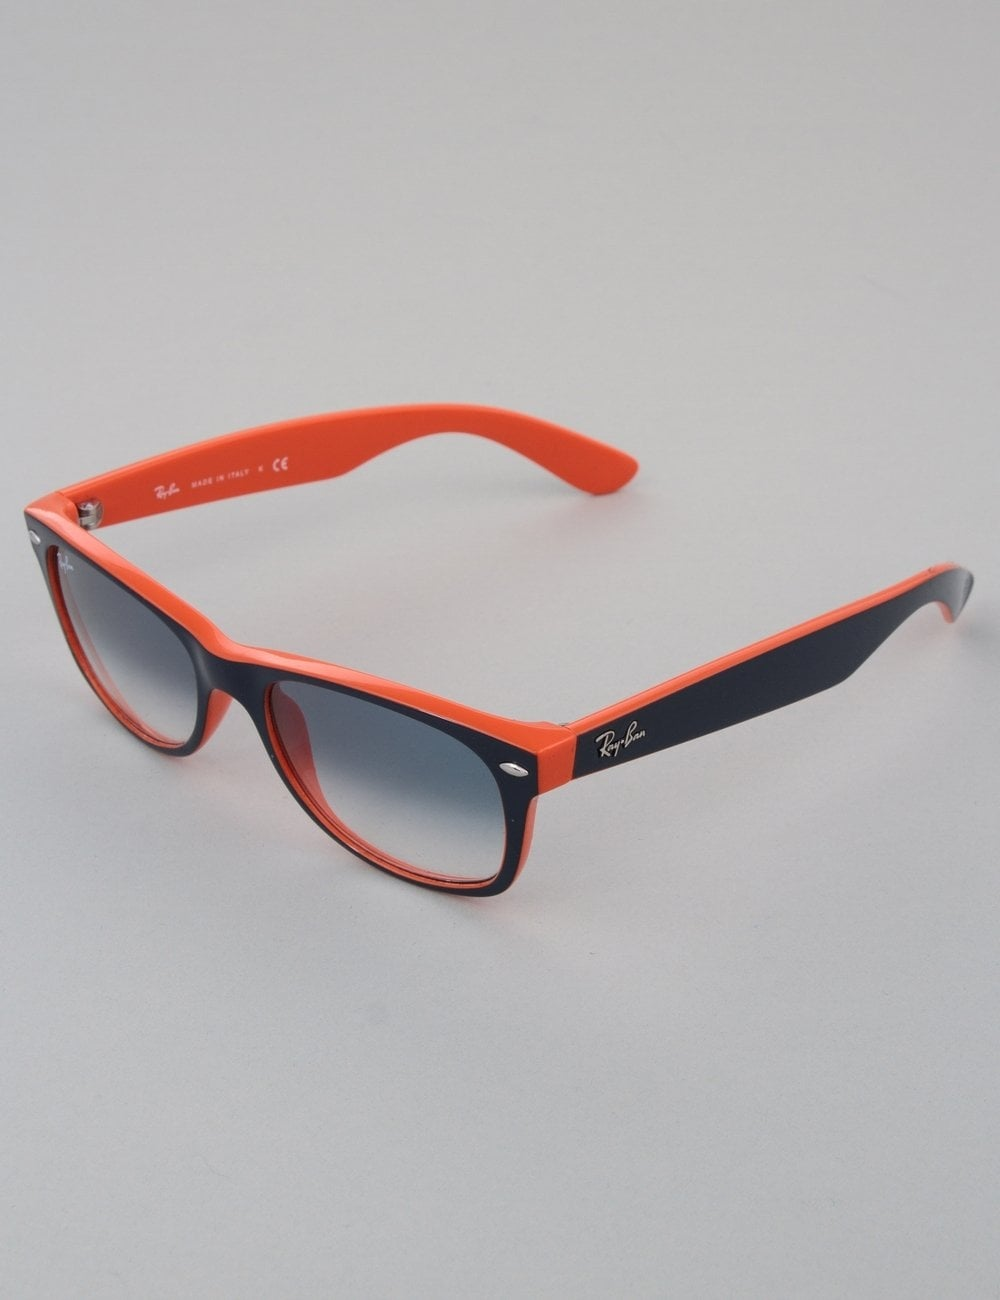 ray ban wayfarer blau orange